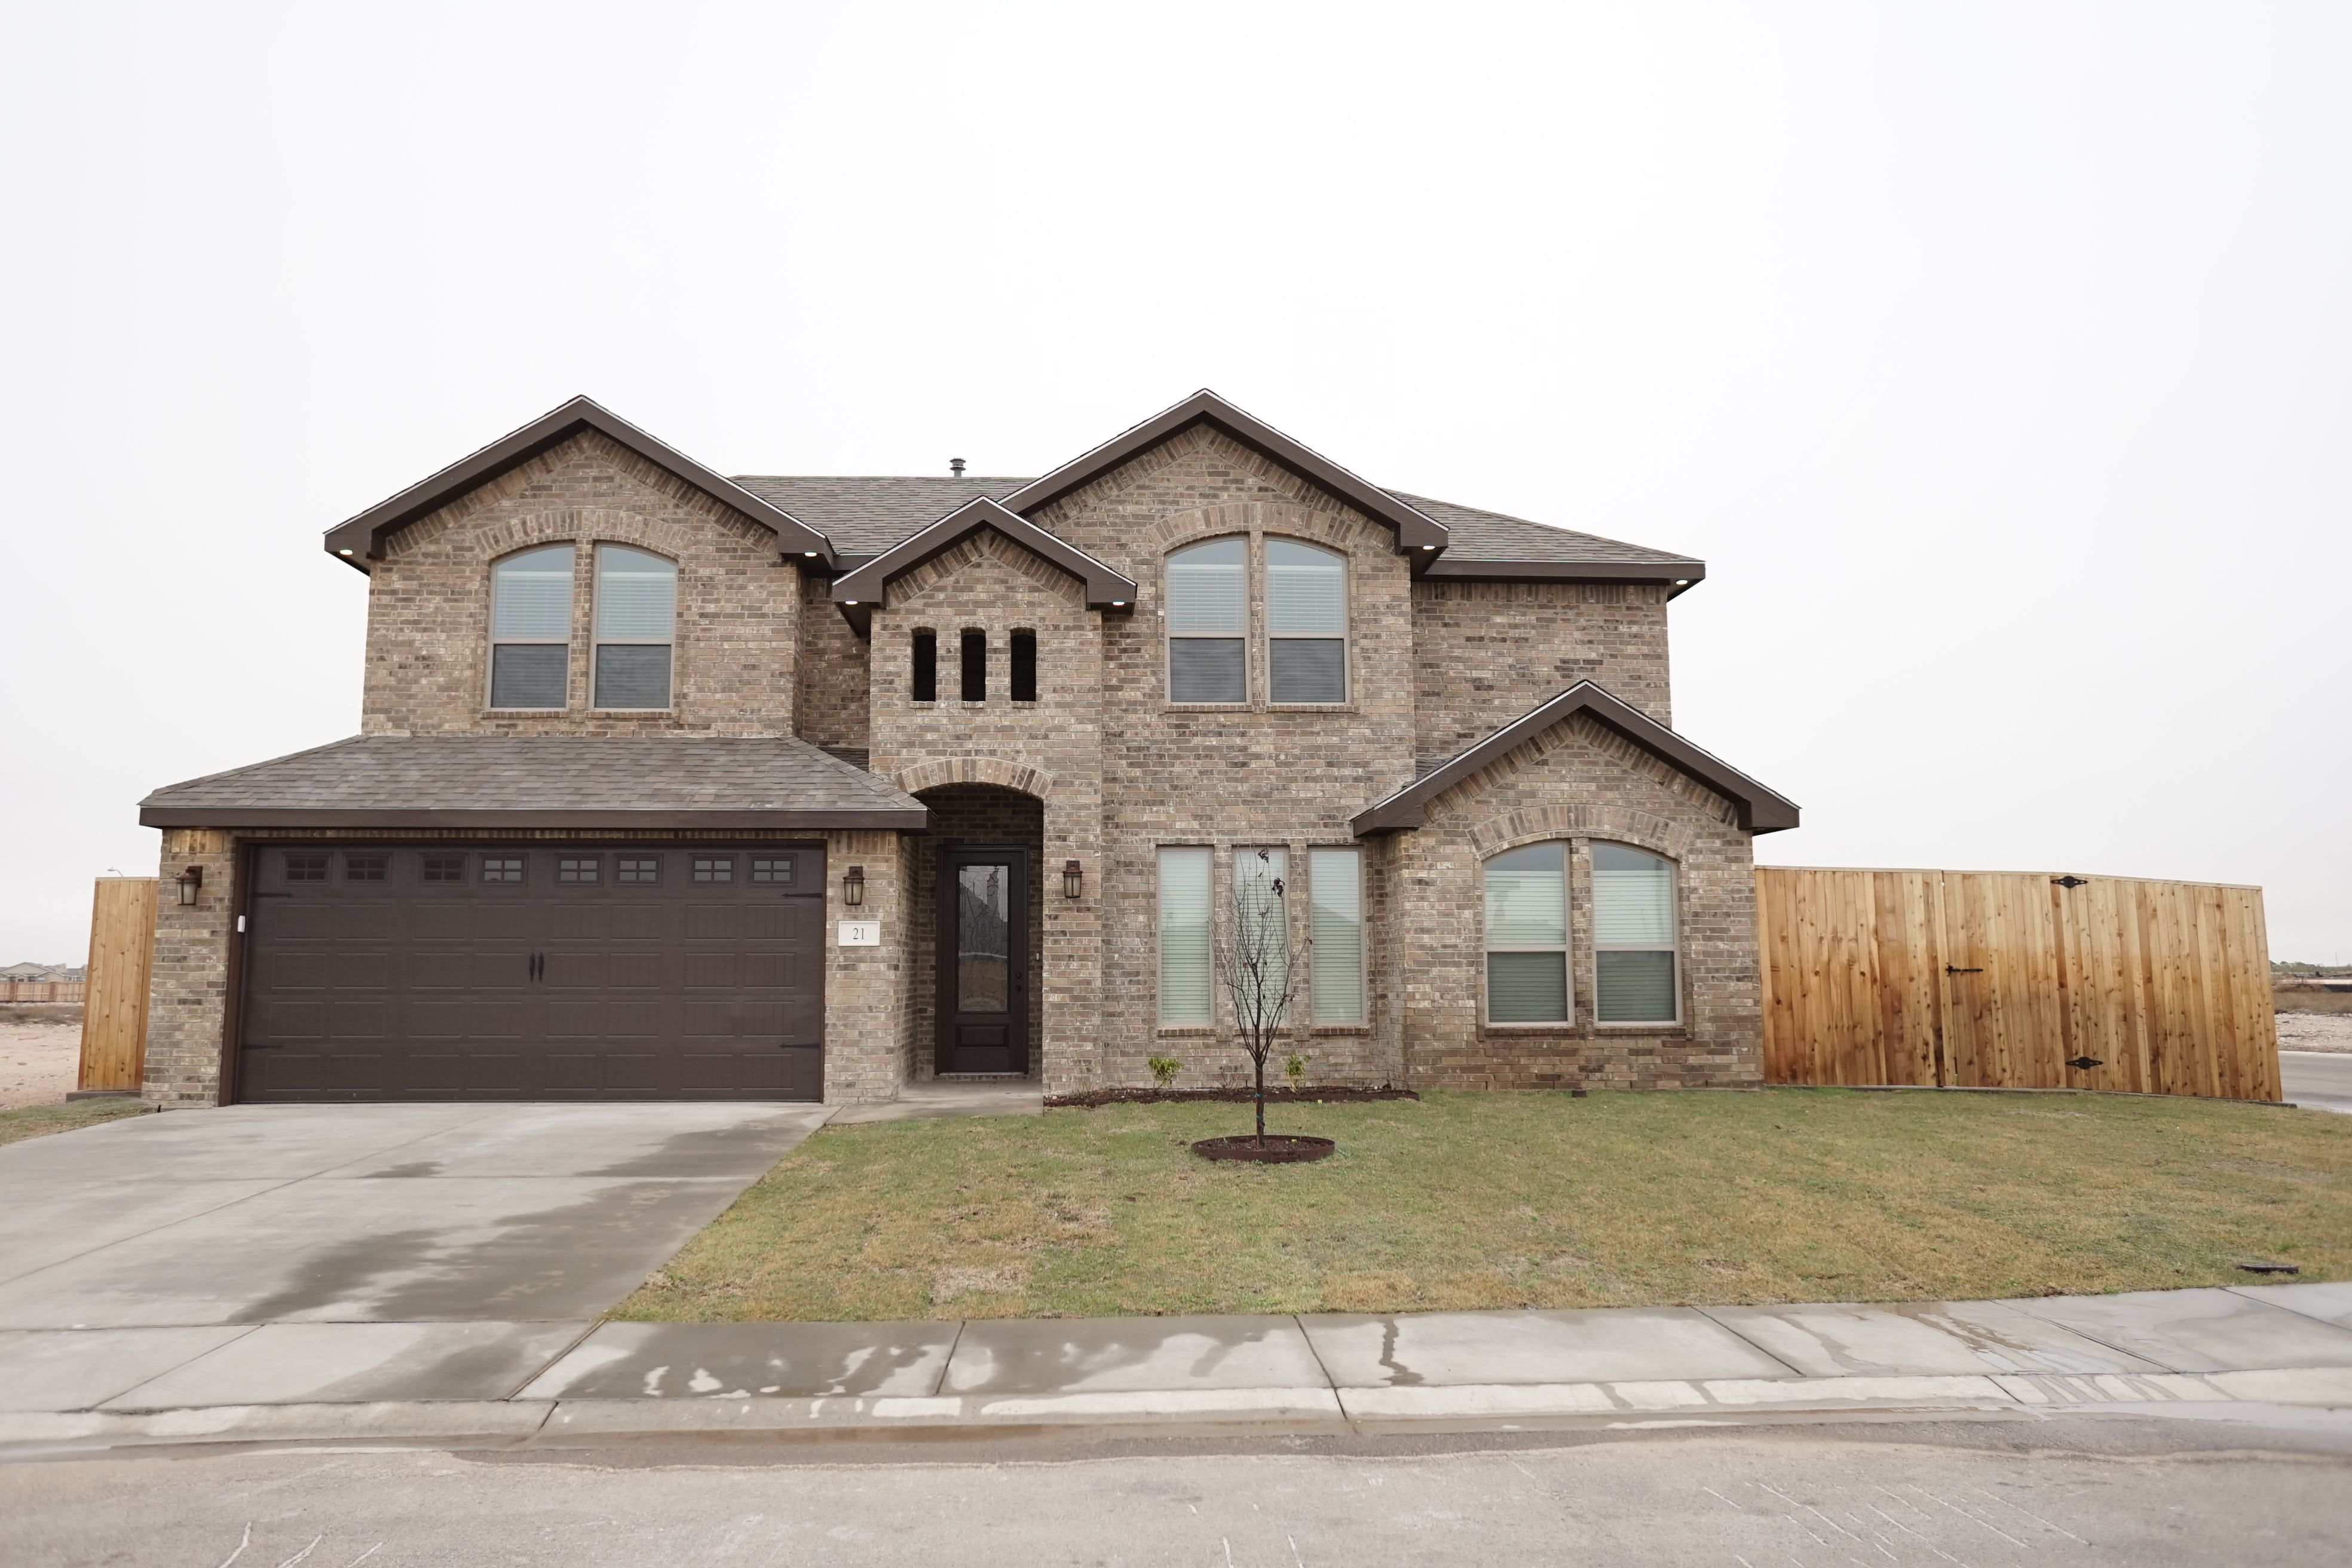 Giana A By Permian Homes Color Sheme E4 French Chateau With Chocolate Trim Garage Door Brick Design House Exterior Model Homes